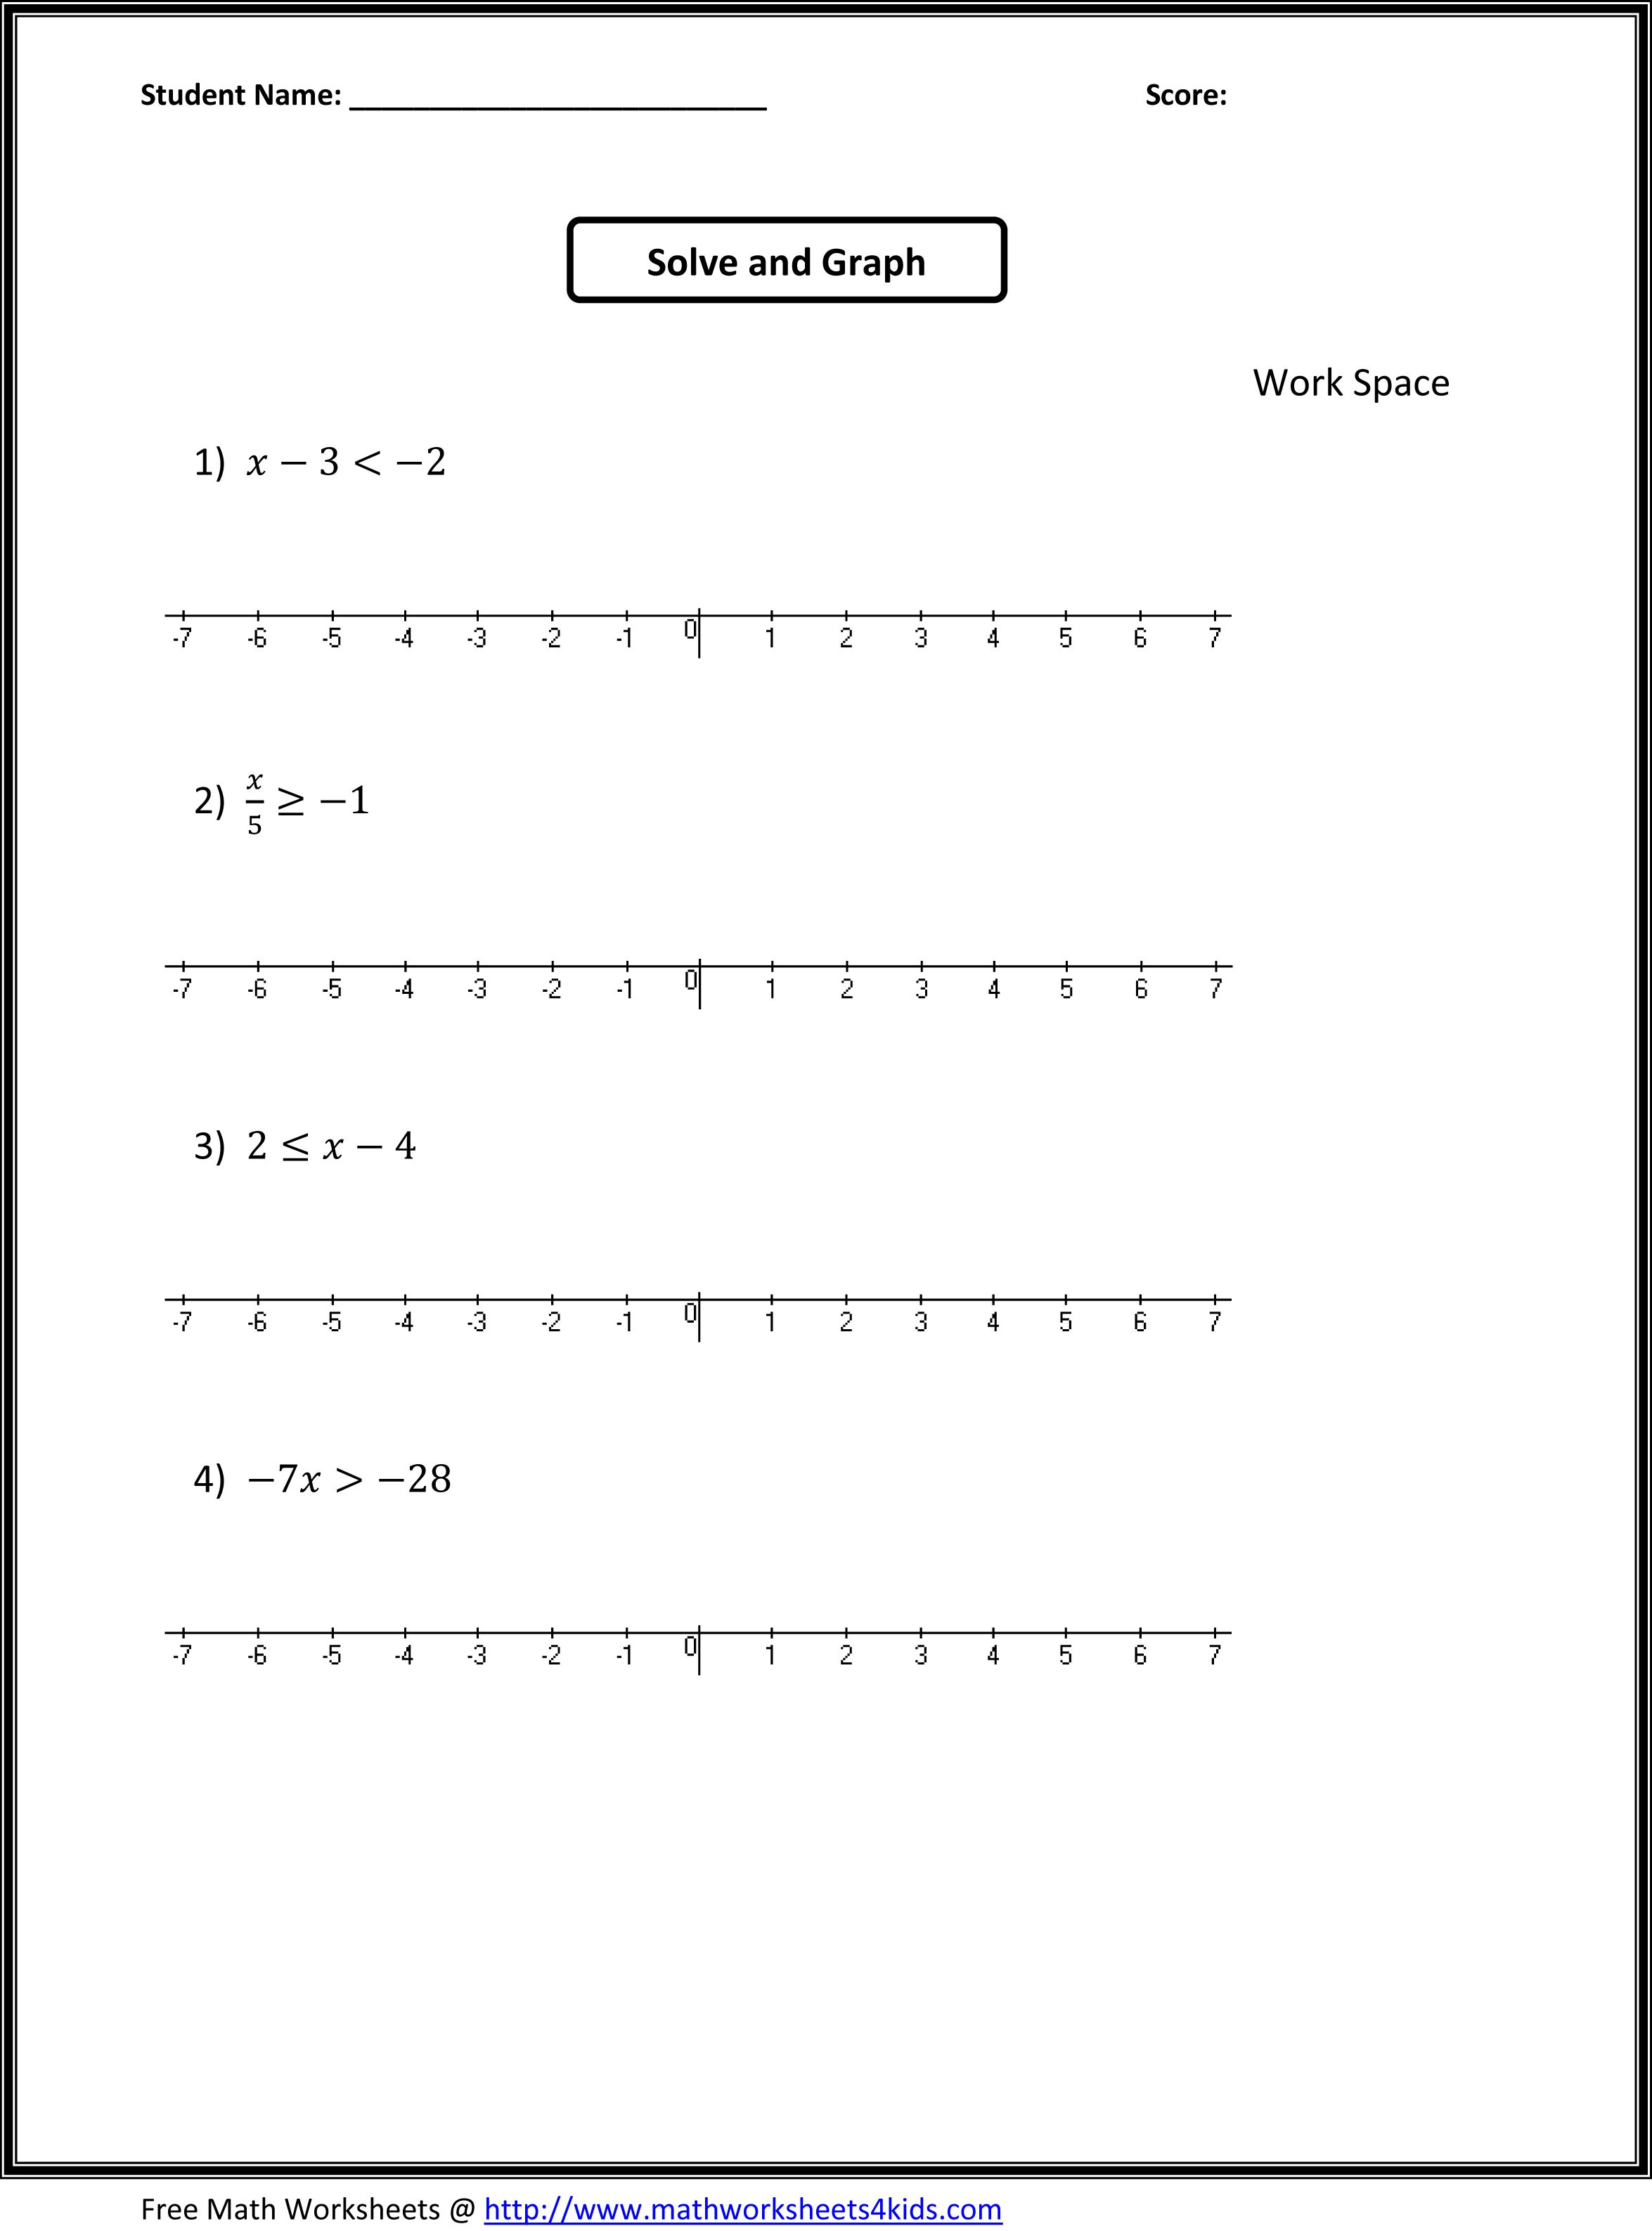 7th Grade Algebra Worksheets 7th Grade Math Worksheets – 6th Grade Math Review Worksheets